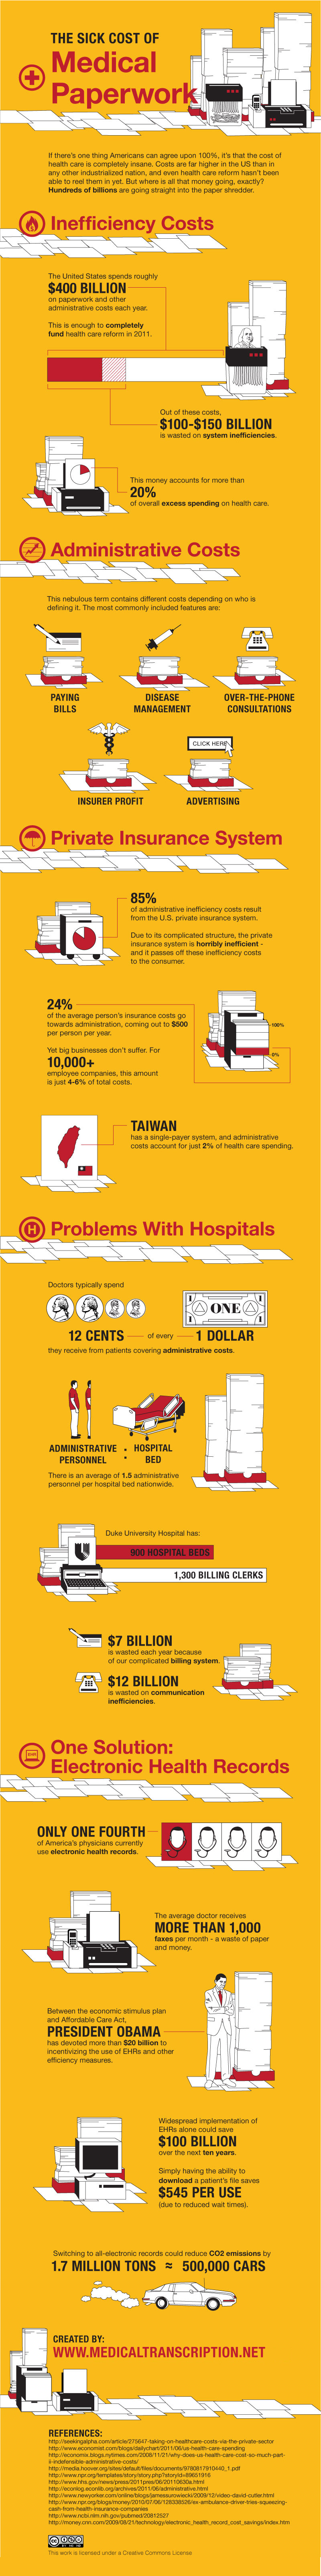 Data graphic documenting wastage on administration in the US health care system